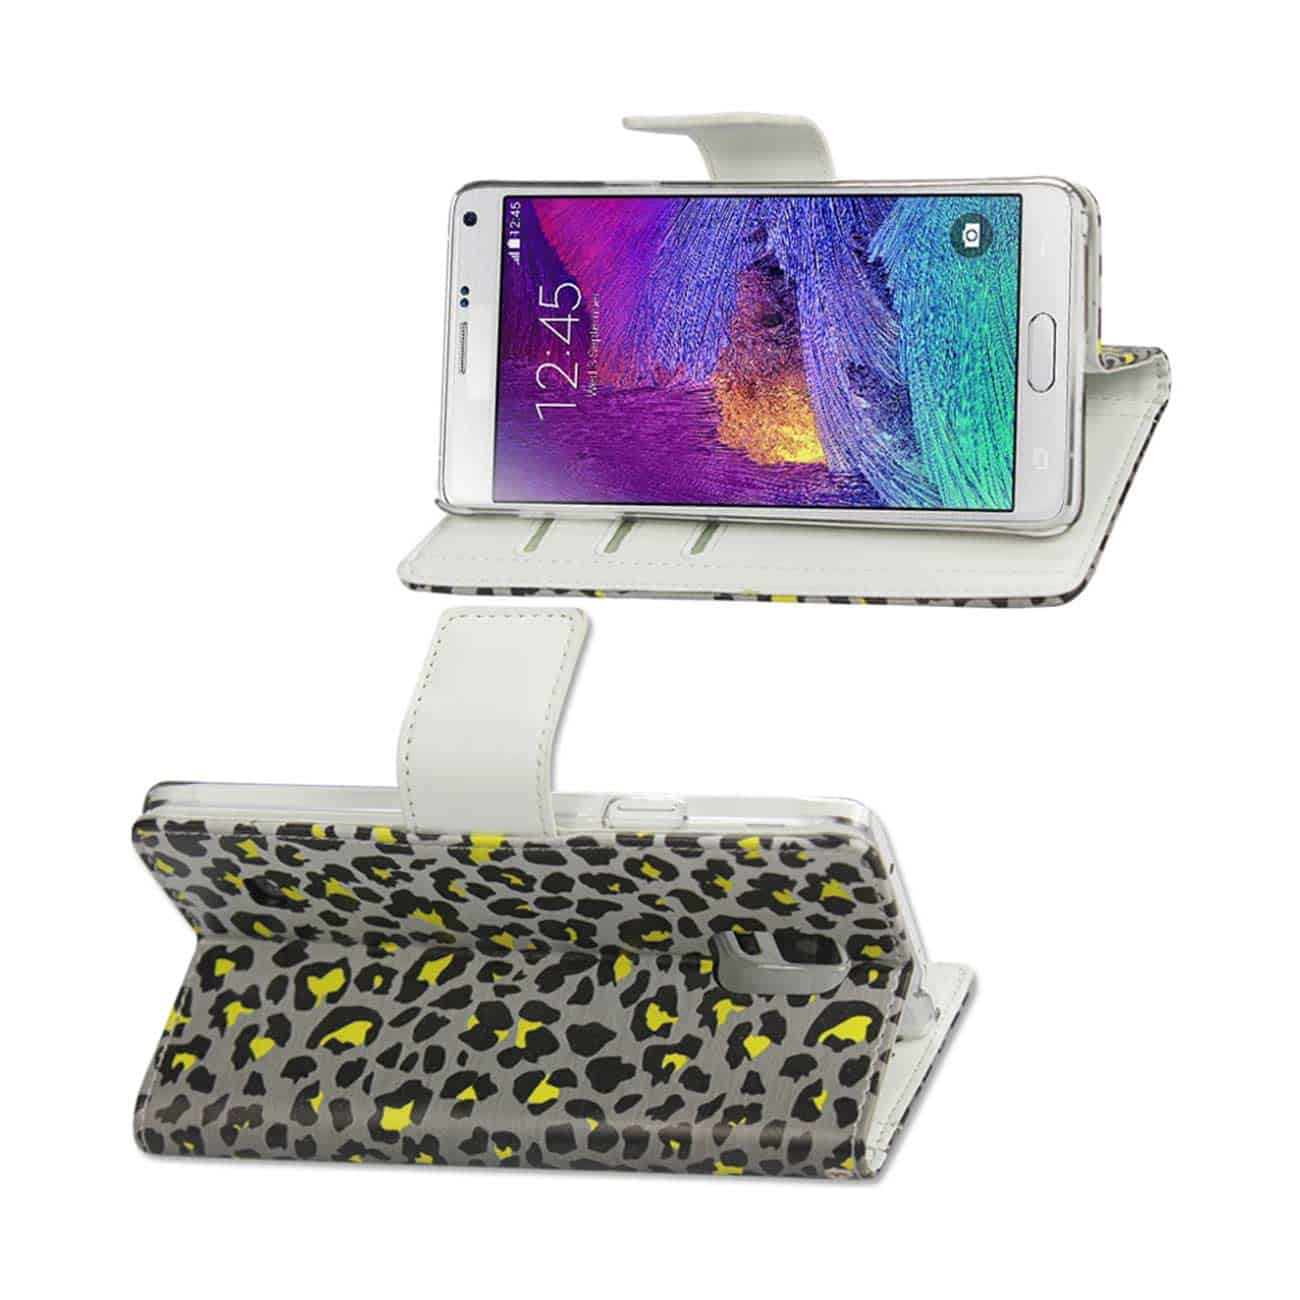 SAMSUNG GALAXY NOTE 4 3-IN-1 ANIMAL LEOPARD PRINT WALLET CASE IN SILVER